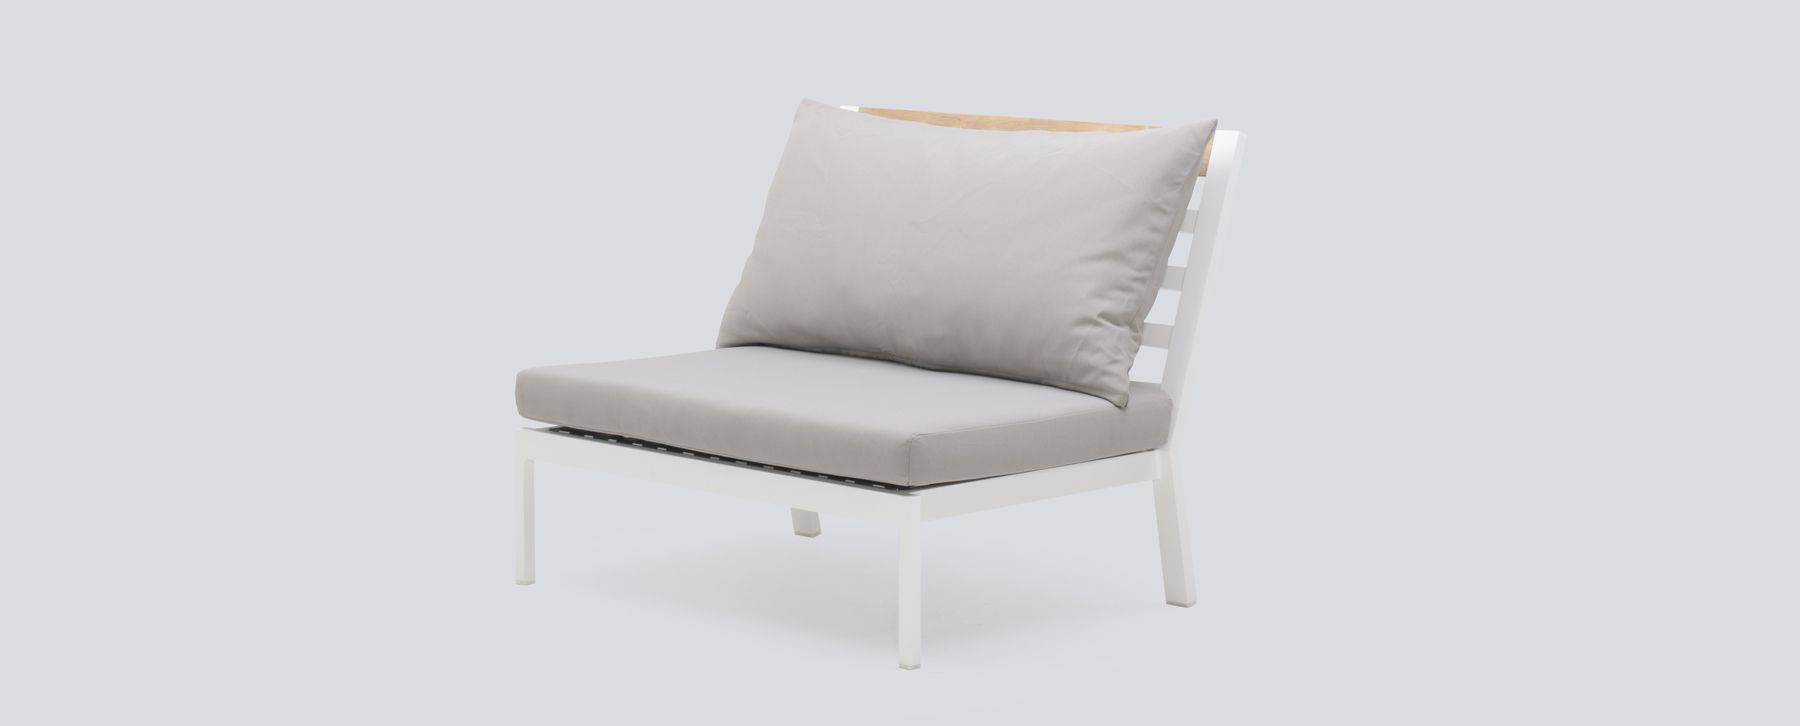 outdoor luxury furniture designer alar middle piece modern outdoor luxury teak aluminum white black commercial hospitality furniture club chair stellar couture